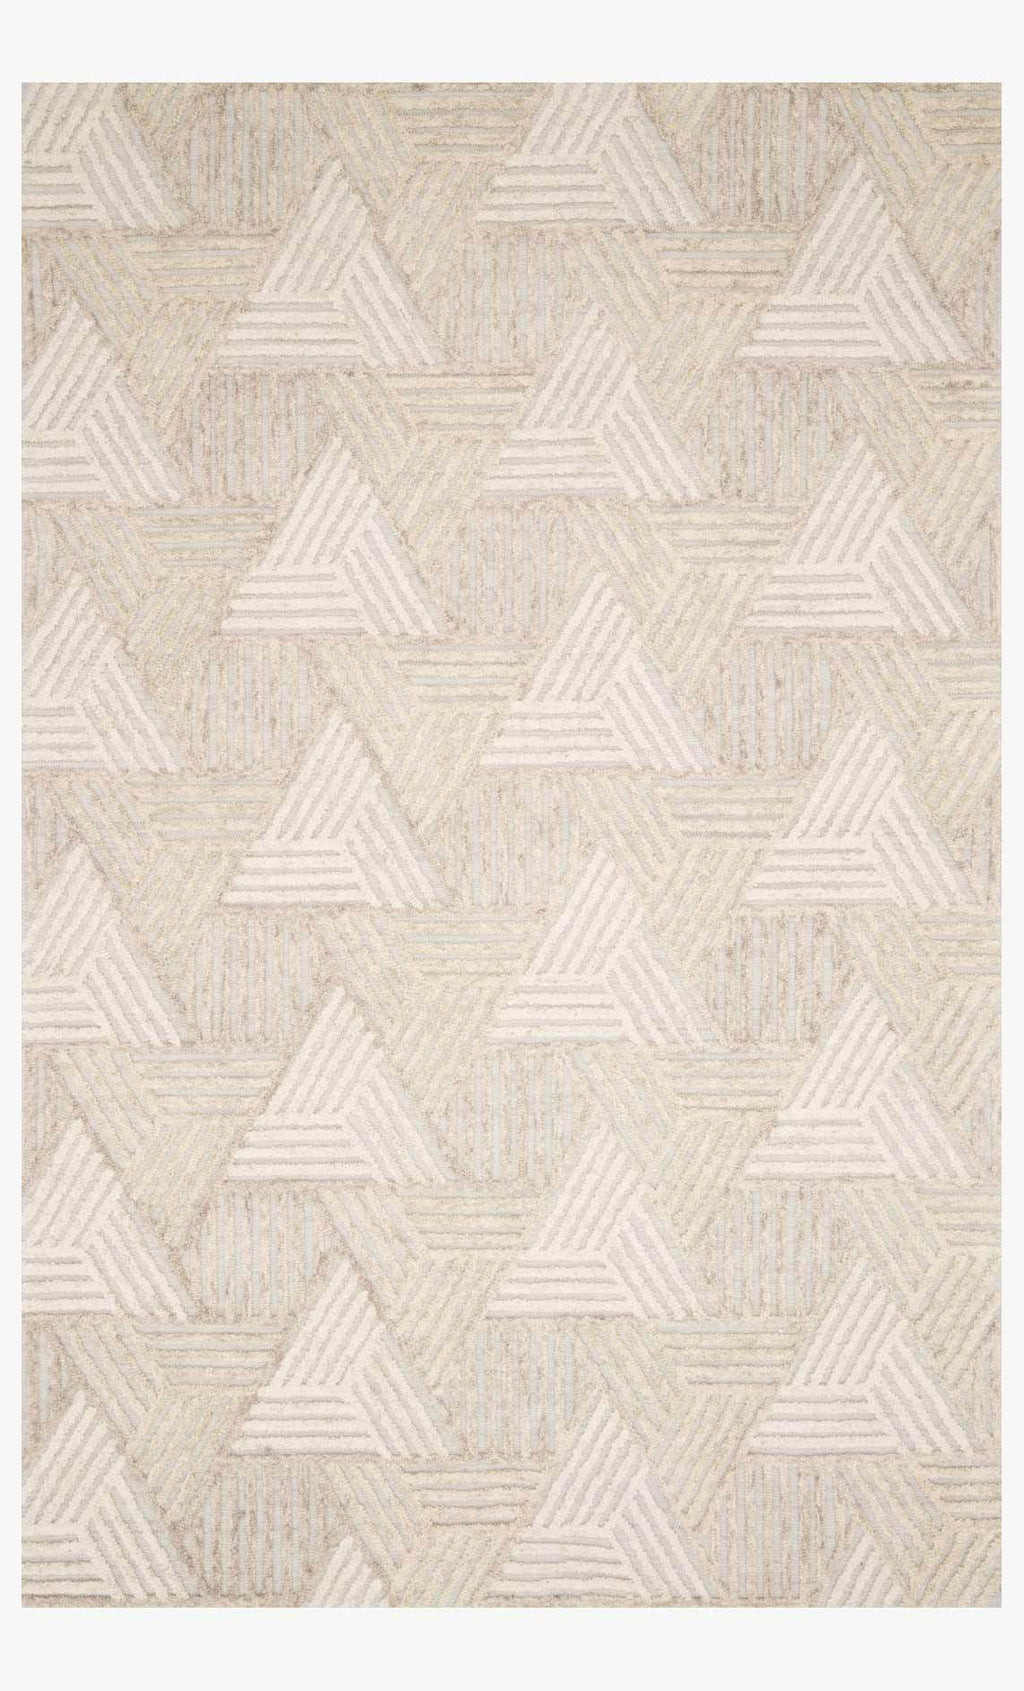 Ehren Collection Rug in Oatmeal / Ivory